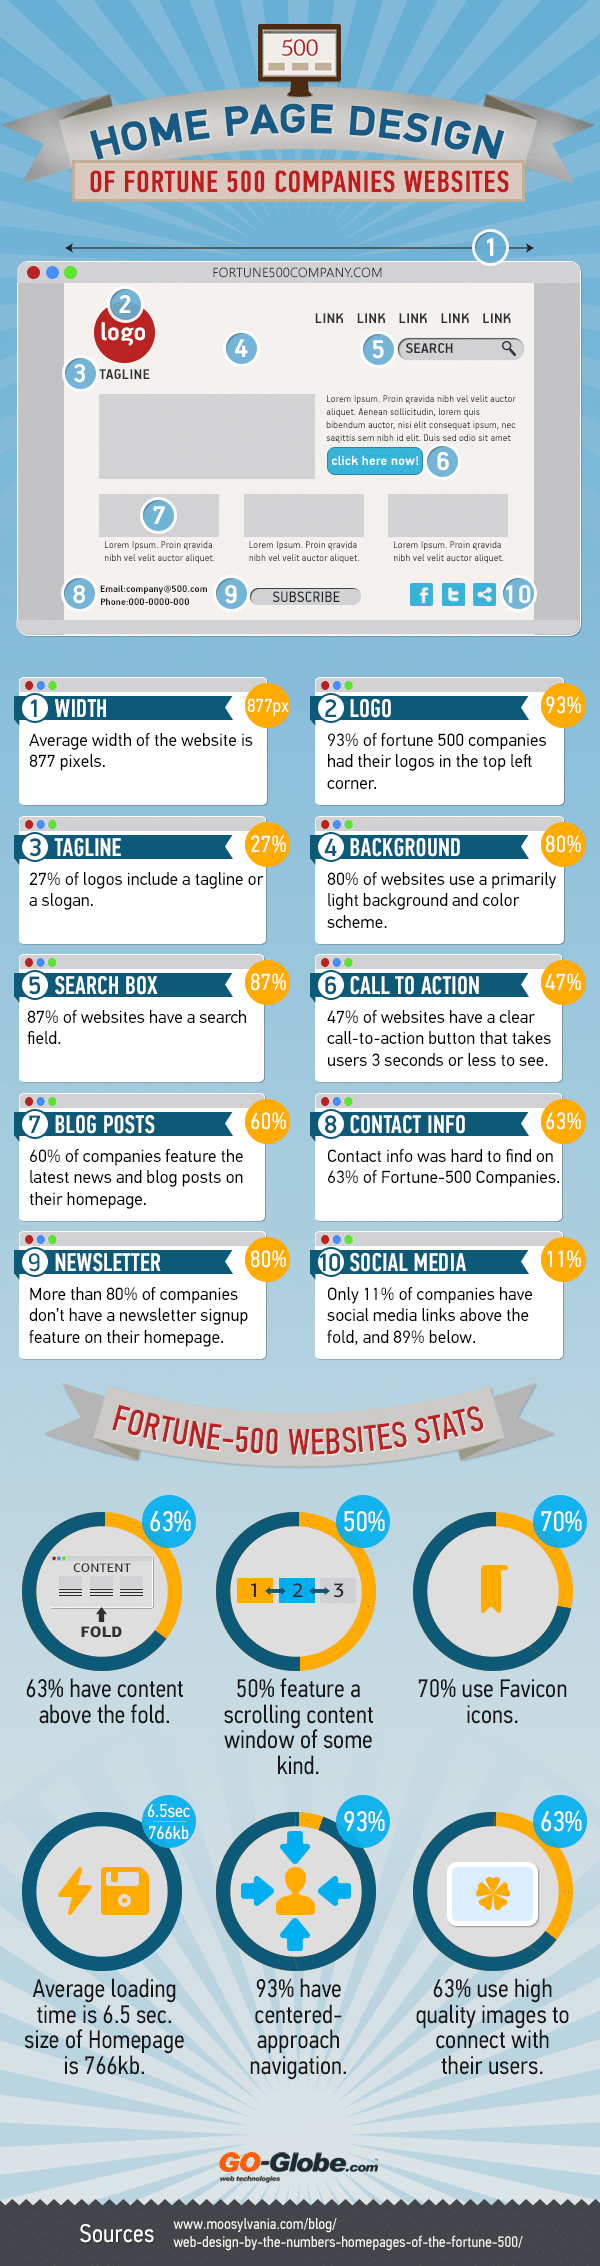 Web design : les home pages des Fortune500 [Infographie]